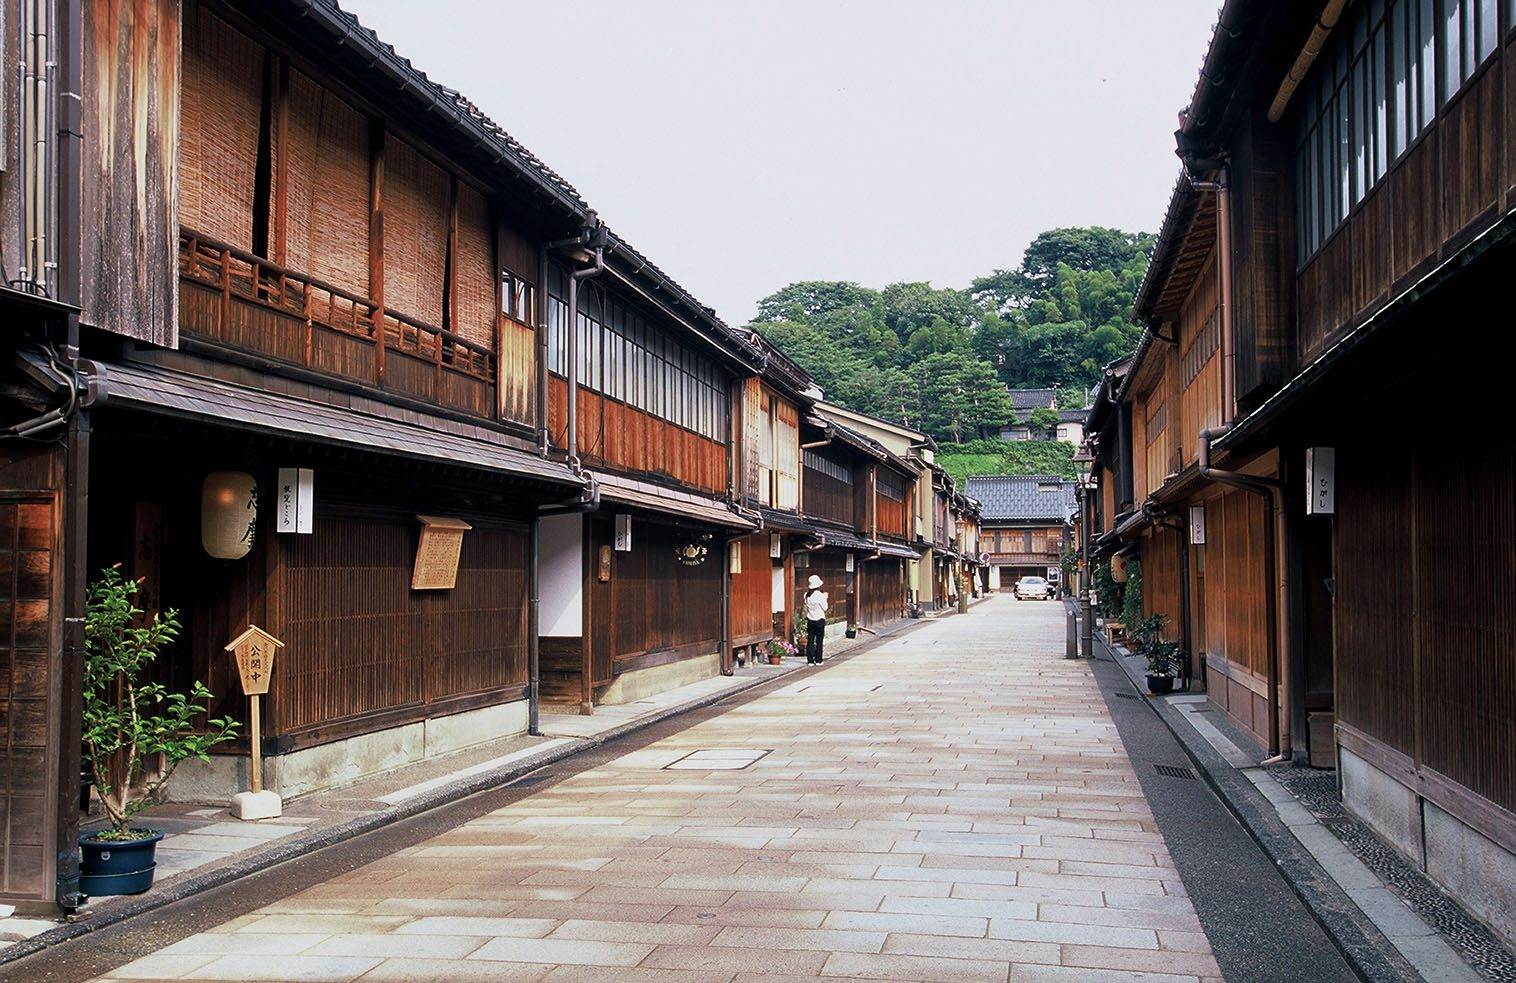 Higashi Chaya District, a beautiful street scene where you can feel Japanese history and culture